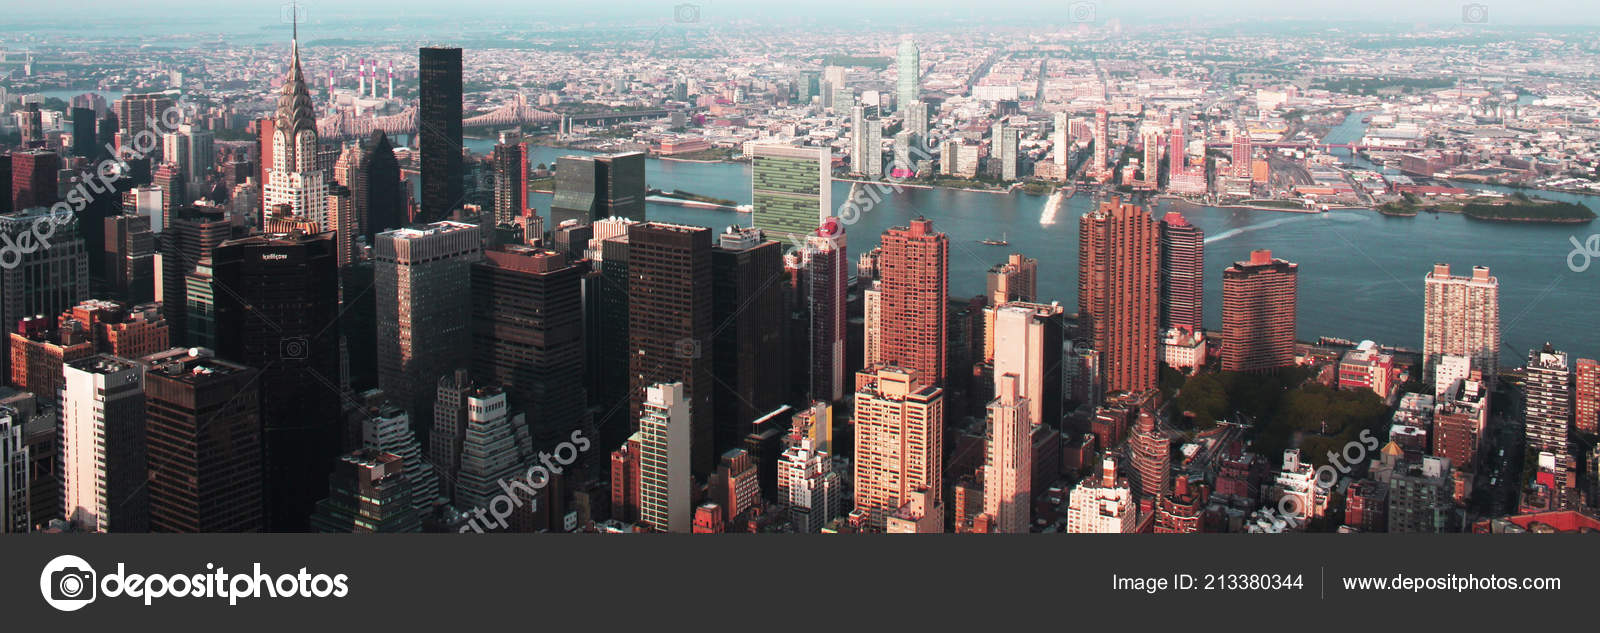 Travel Blog Header Website Header And Banner Of New York Cityscape With Skyscarapers Stock Editorial Photo C Sisterspro 213380344